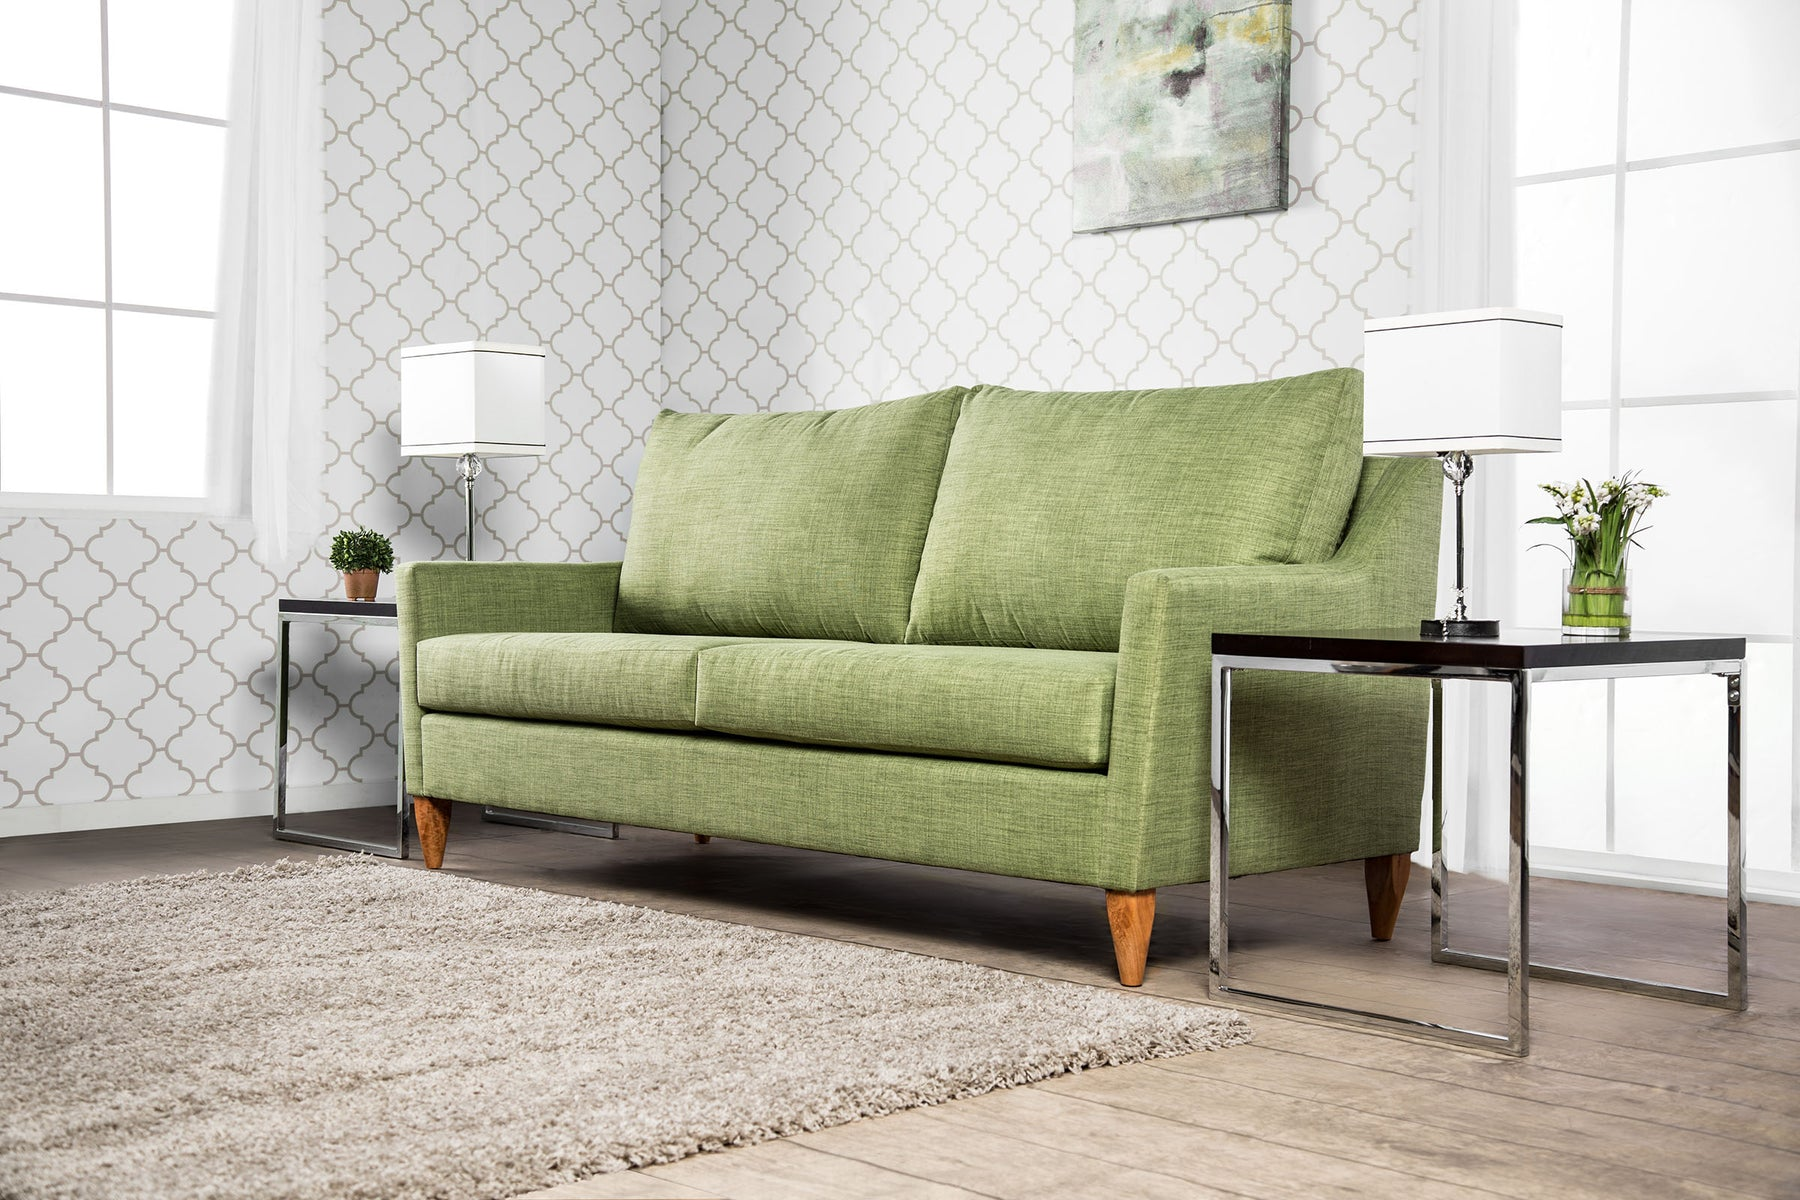 Marilyn Fabric Green Mid-Century Modern Sofa